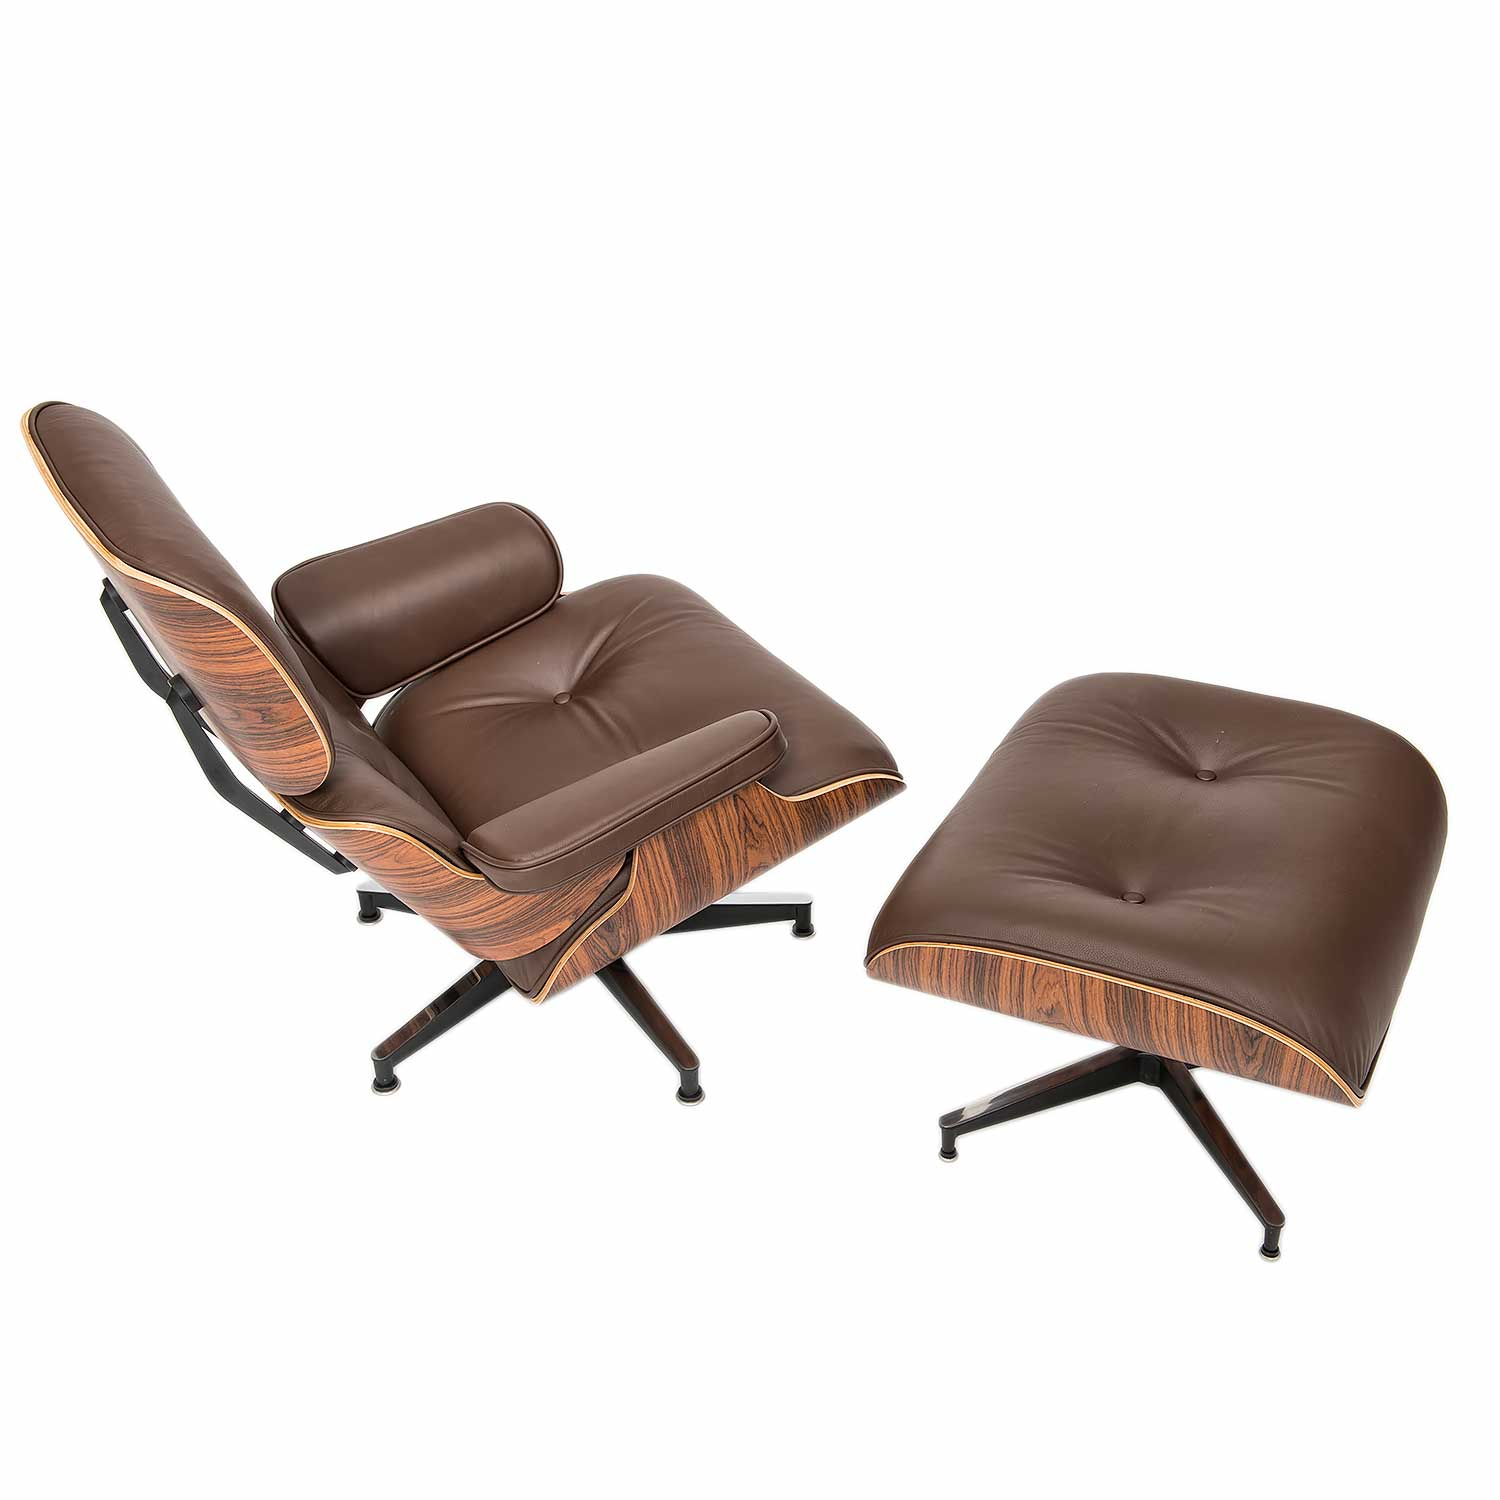 eames designed lounge chair with ottoman a steelform. Black Bedroom Furniture Sets. Home Design Ideas